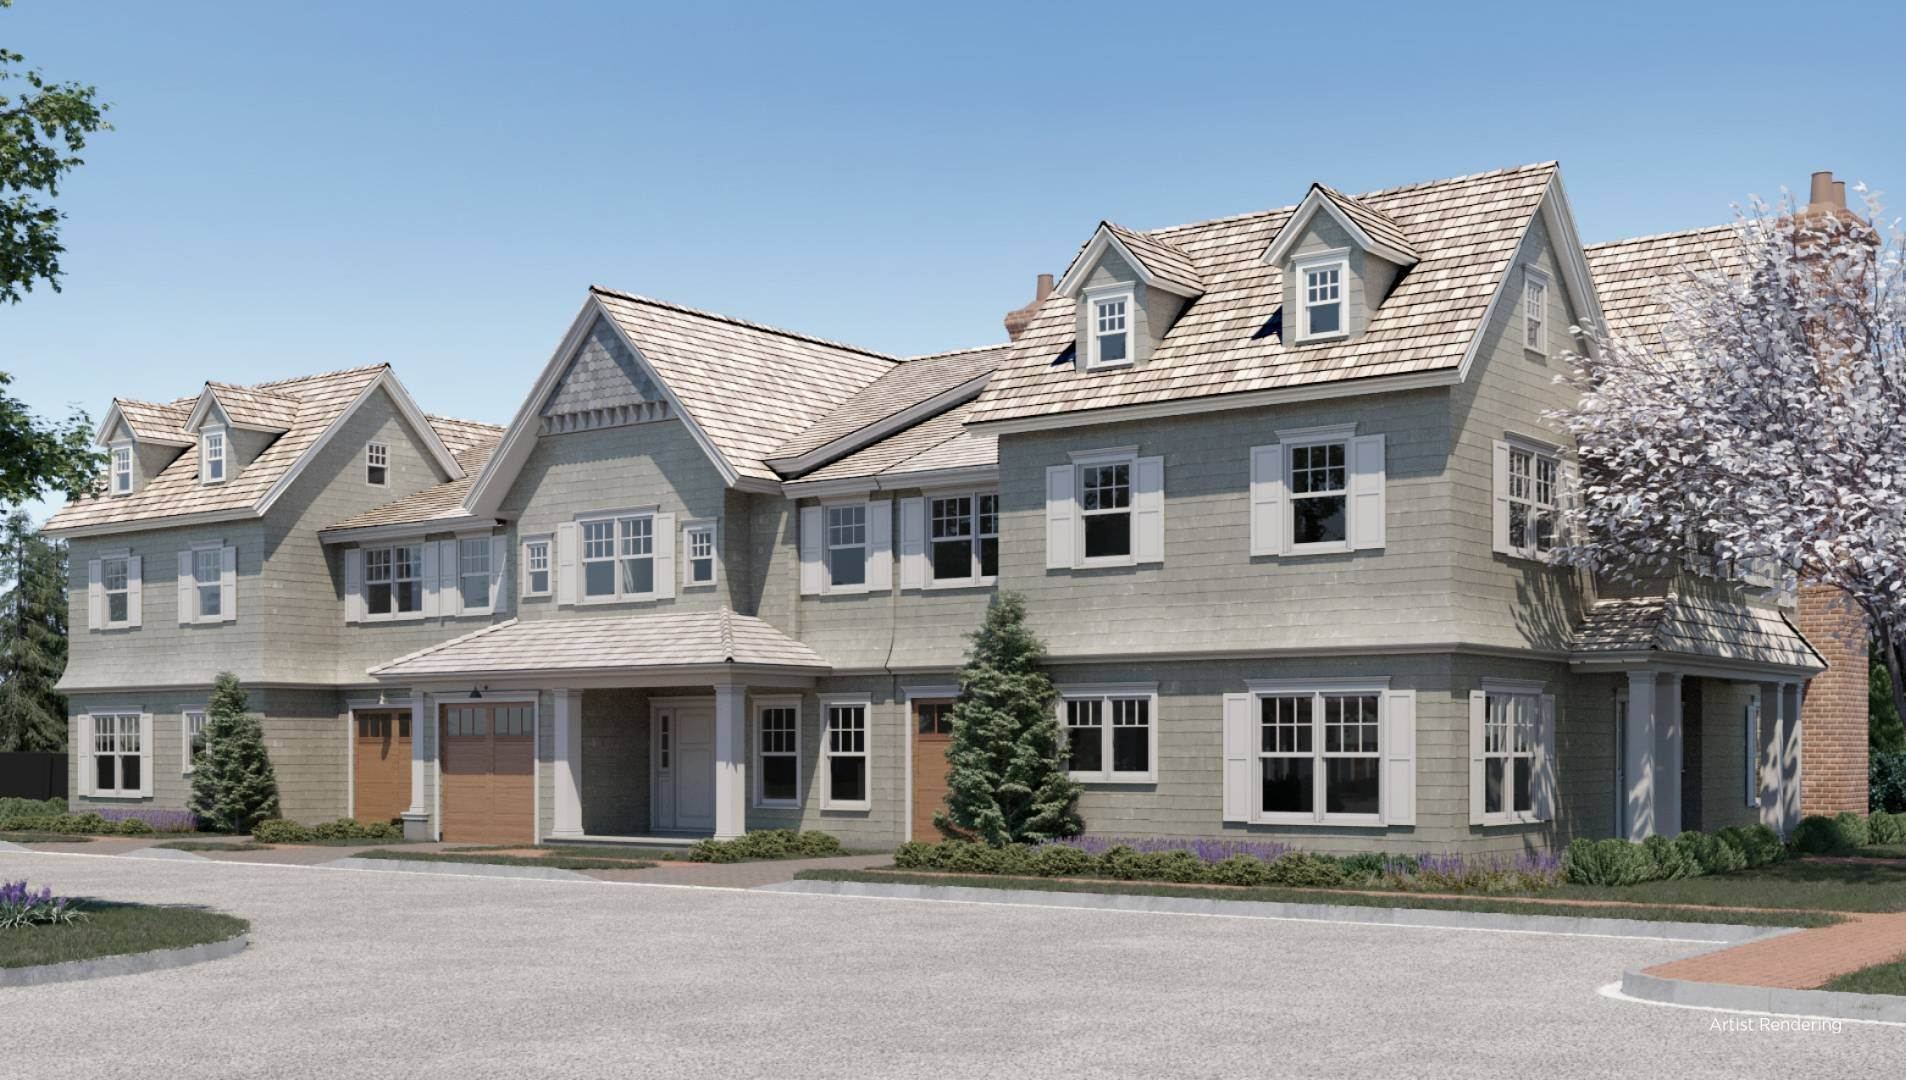 townhouses for Sale at The Latch At Southampton Village 101 Hill St, 11e1, Southampton, NY 11968